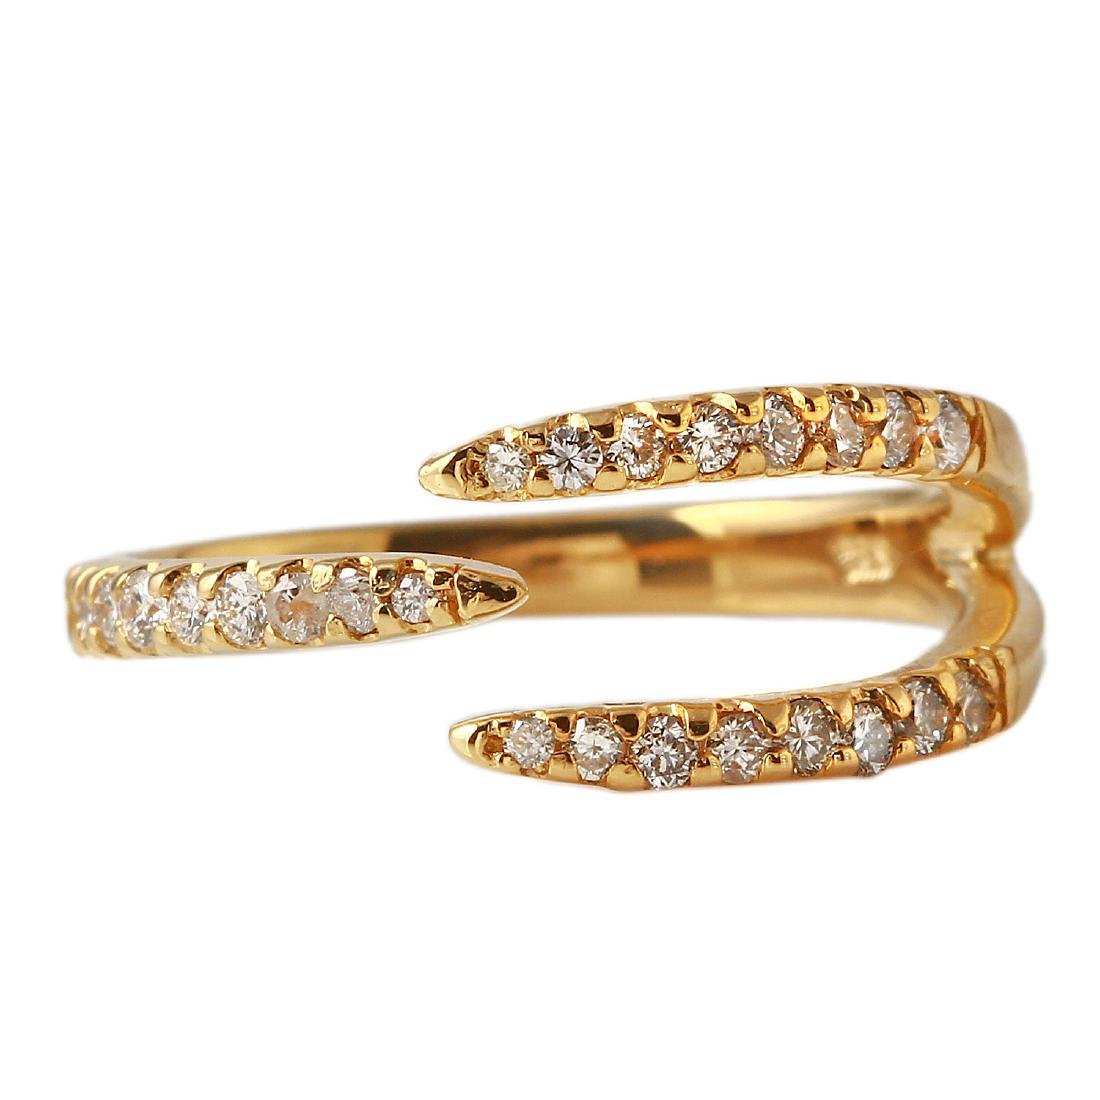 0.32 Carat Natural Diamond 18K Solid Yellow Gold Ring